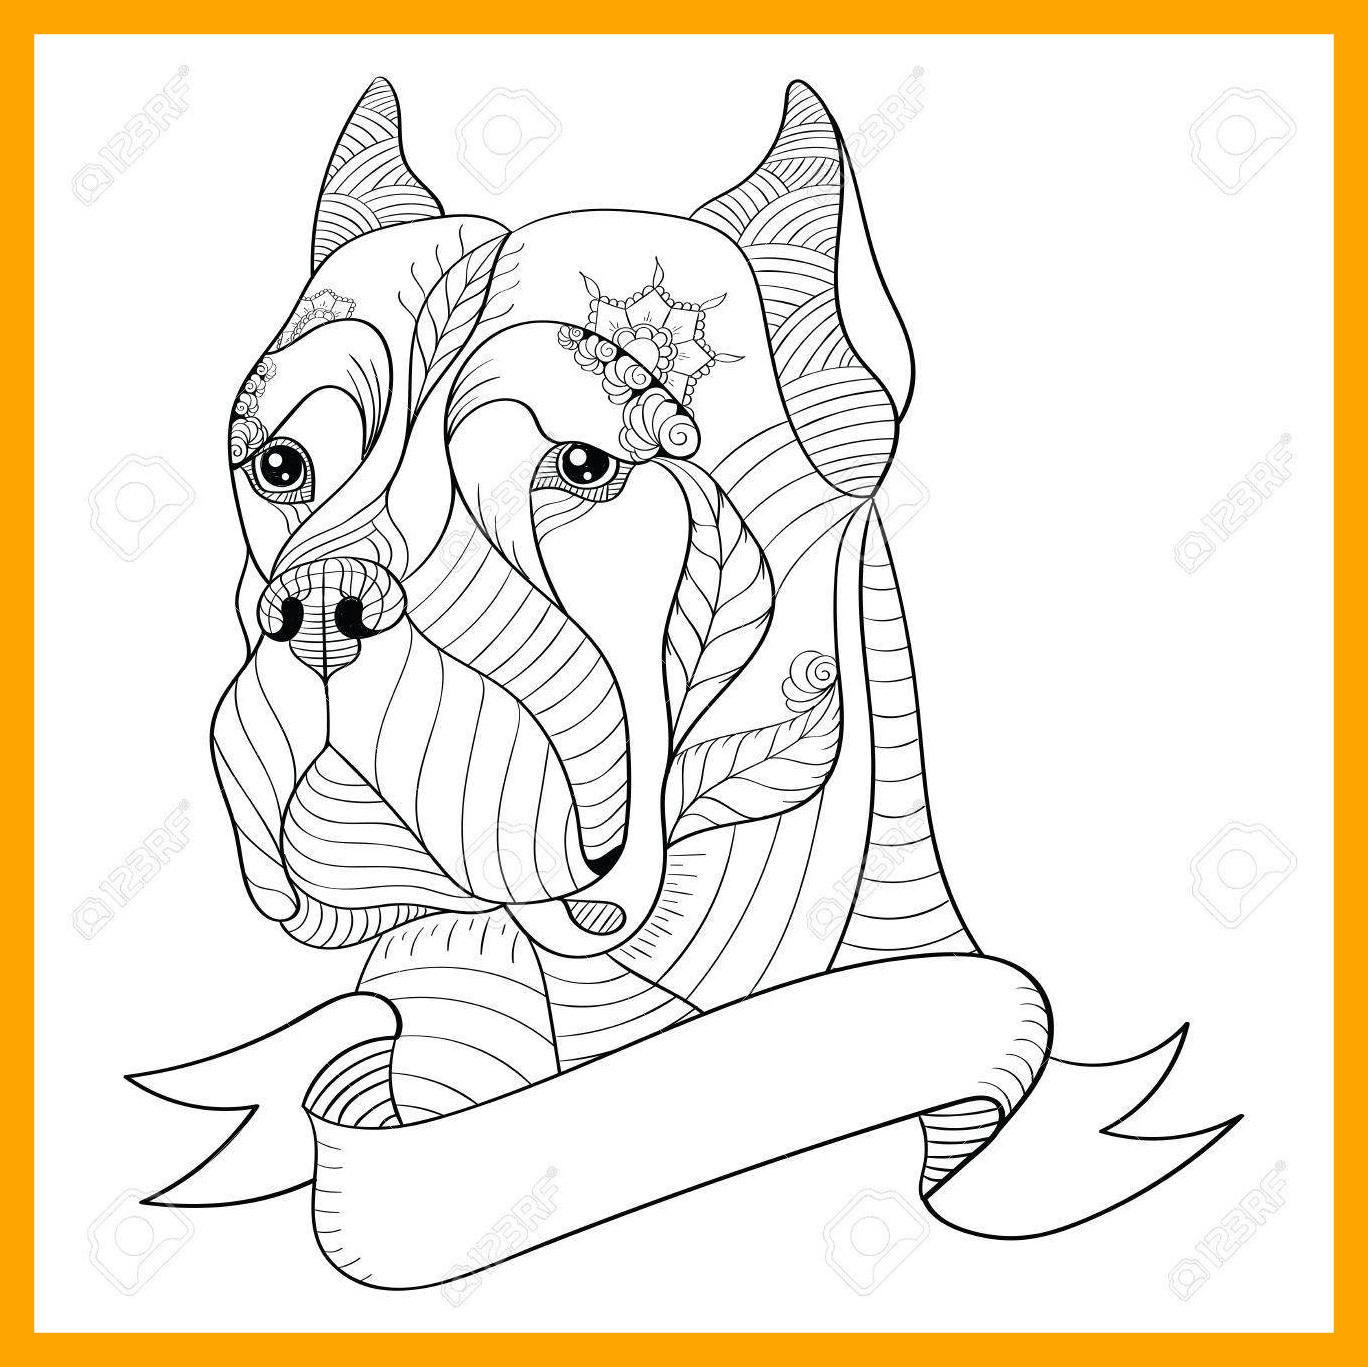 1368x1367 Amazing Australian Shepherd Coloring Pages Finest Tricolor Puppy